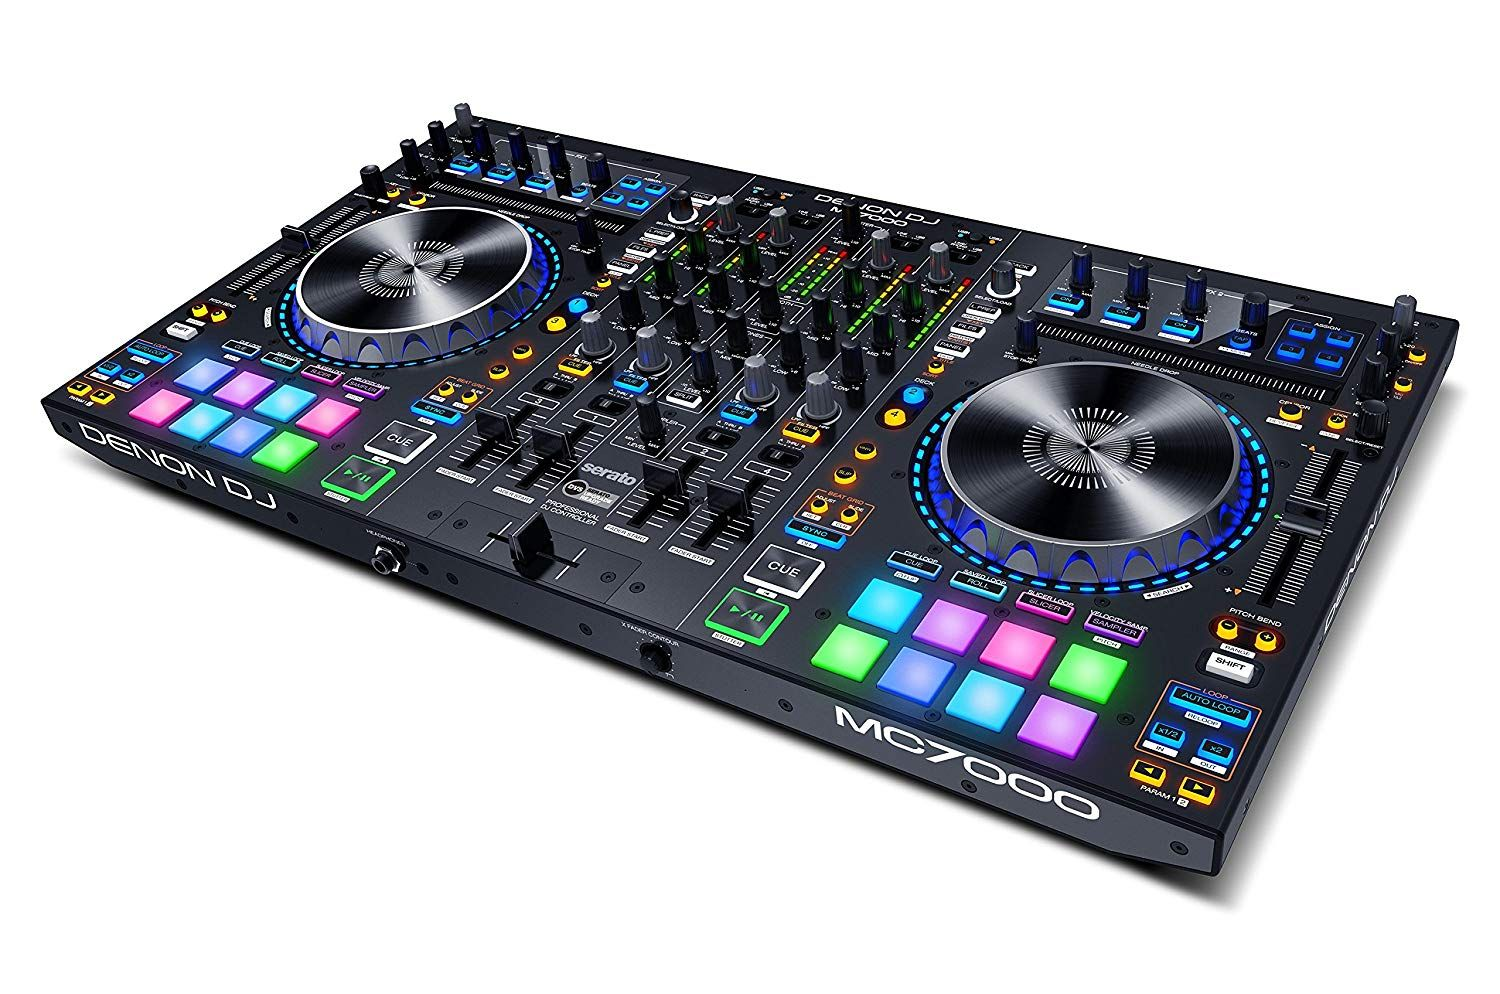 Denon DJ MC7000 is the latest version and perfect for a